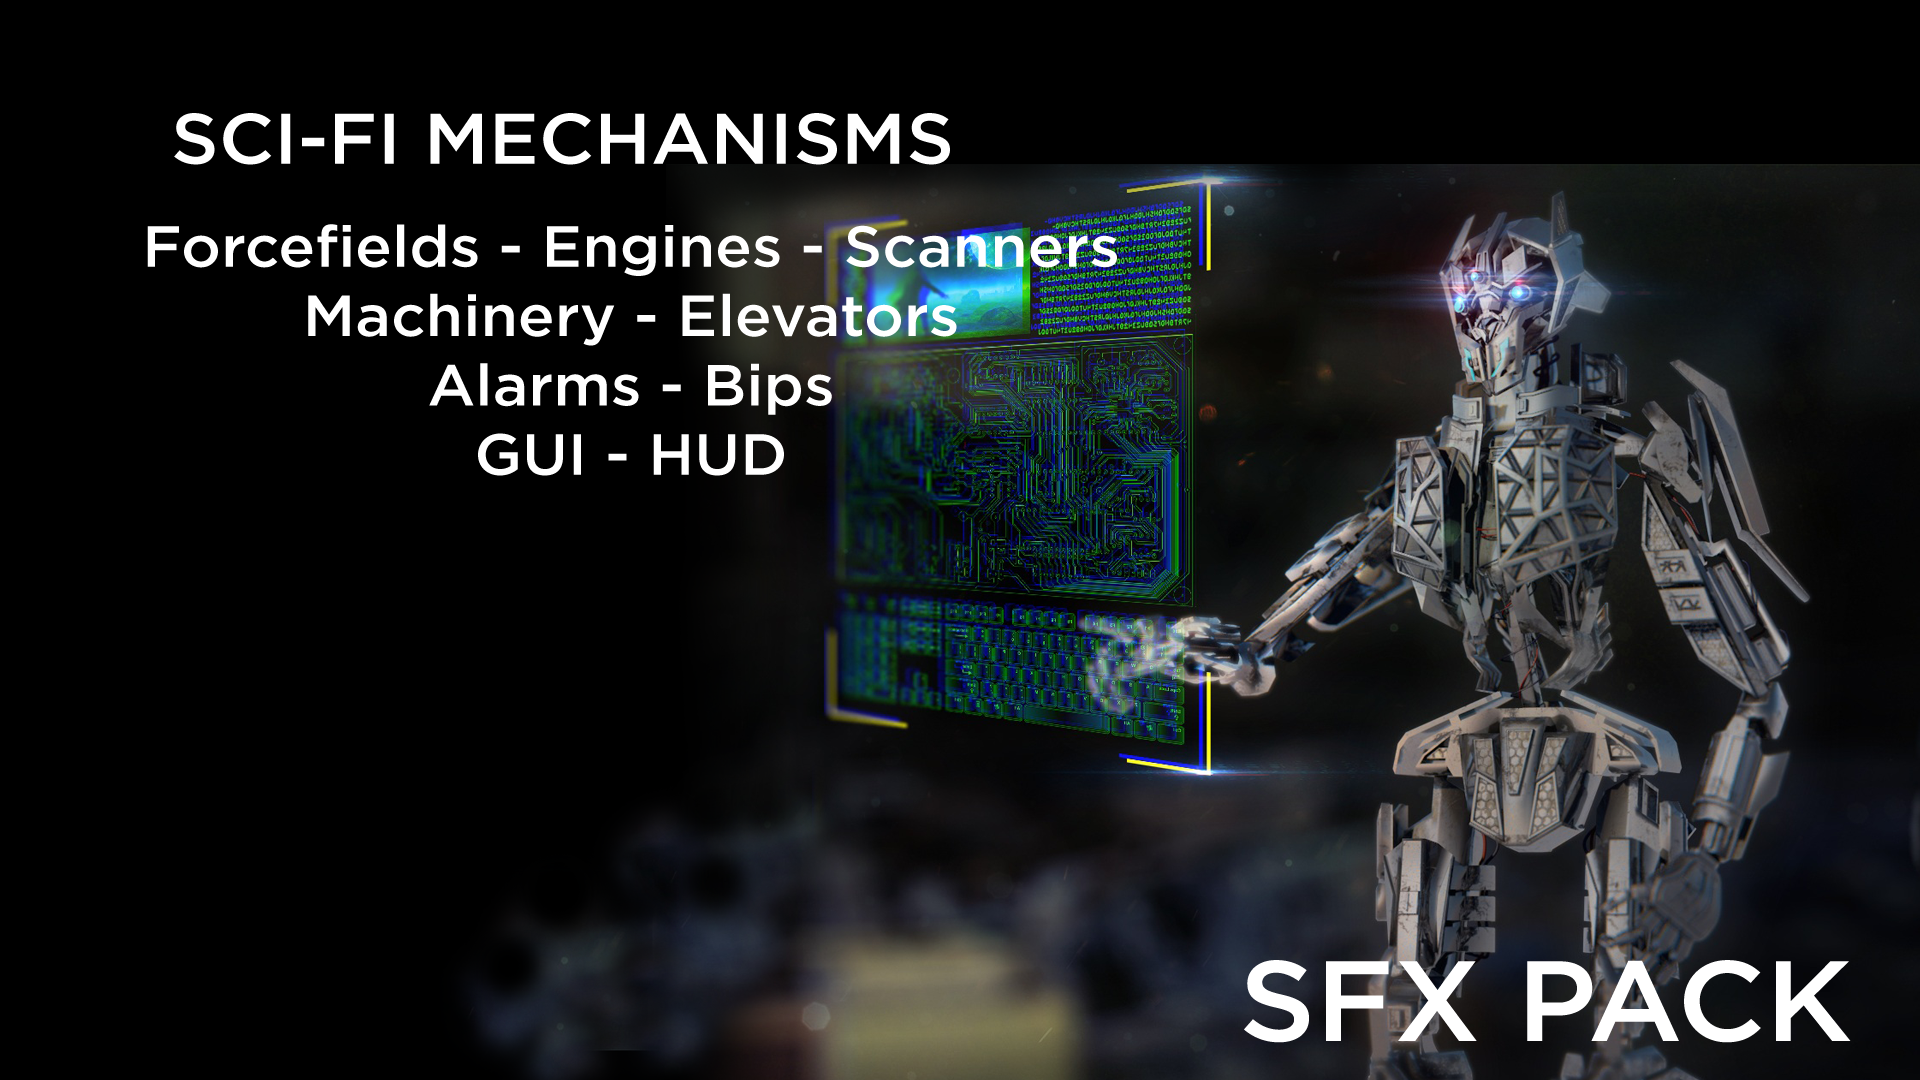 Sci-Fi Mechanisms SFX: Forcefields, Machinery, GUI, HUD ++